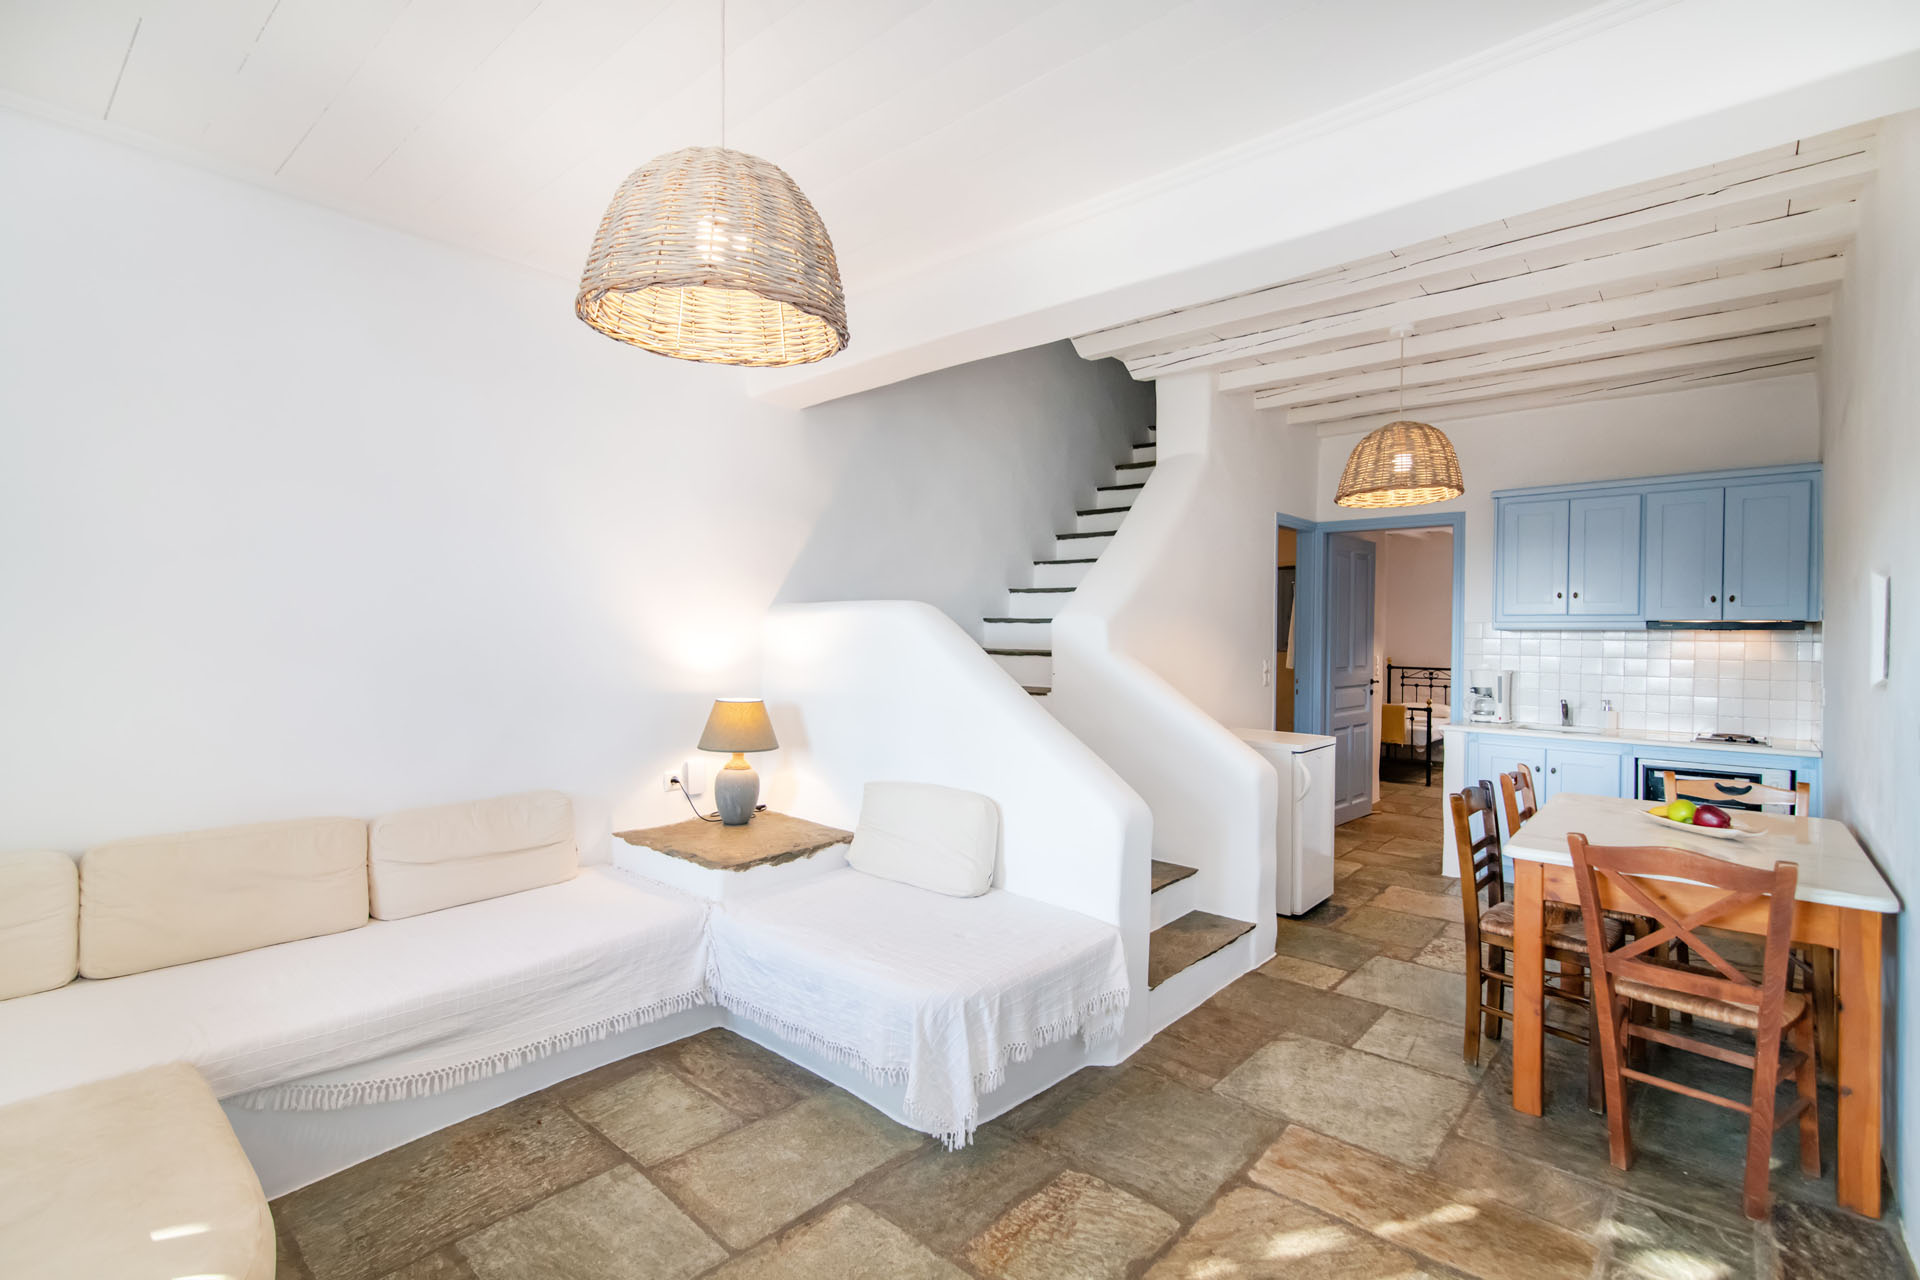 Tinos Hotels Throubi